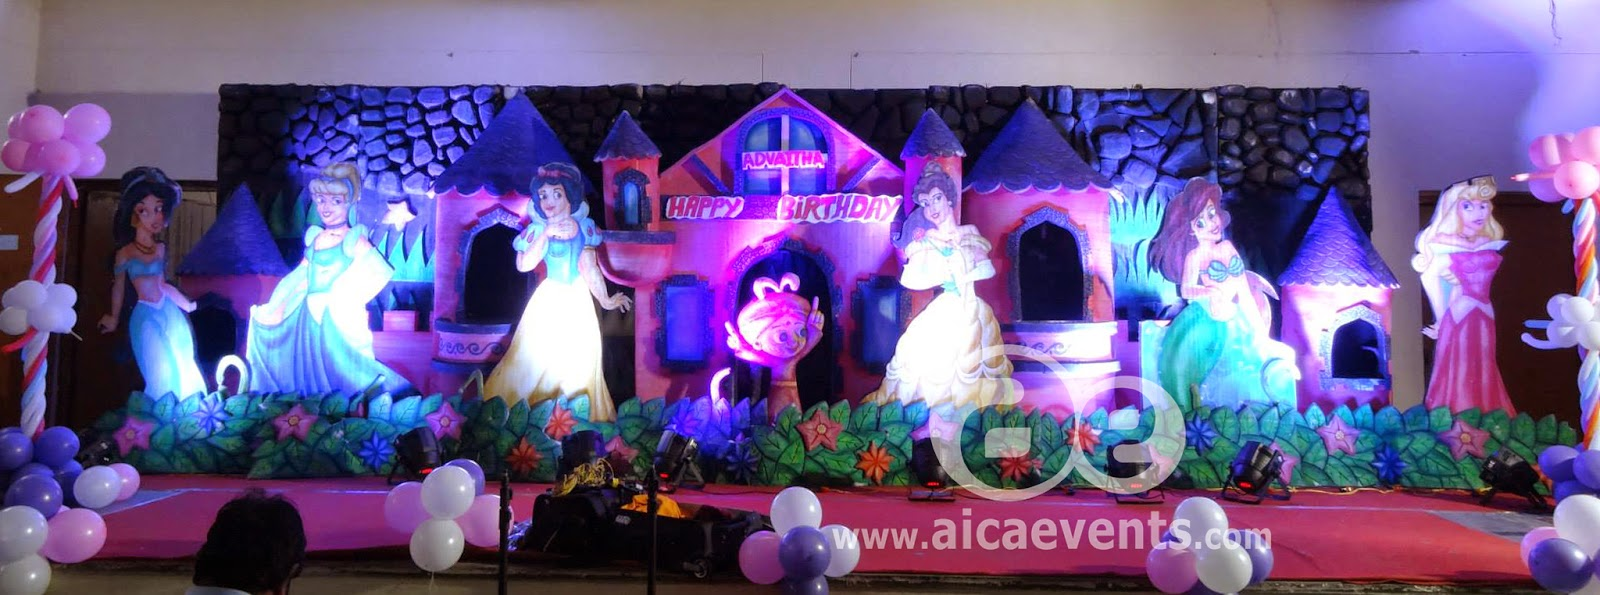 Aicaevents barbie theme decorations for girls birthday for 1st birthday stage decoration